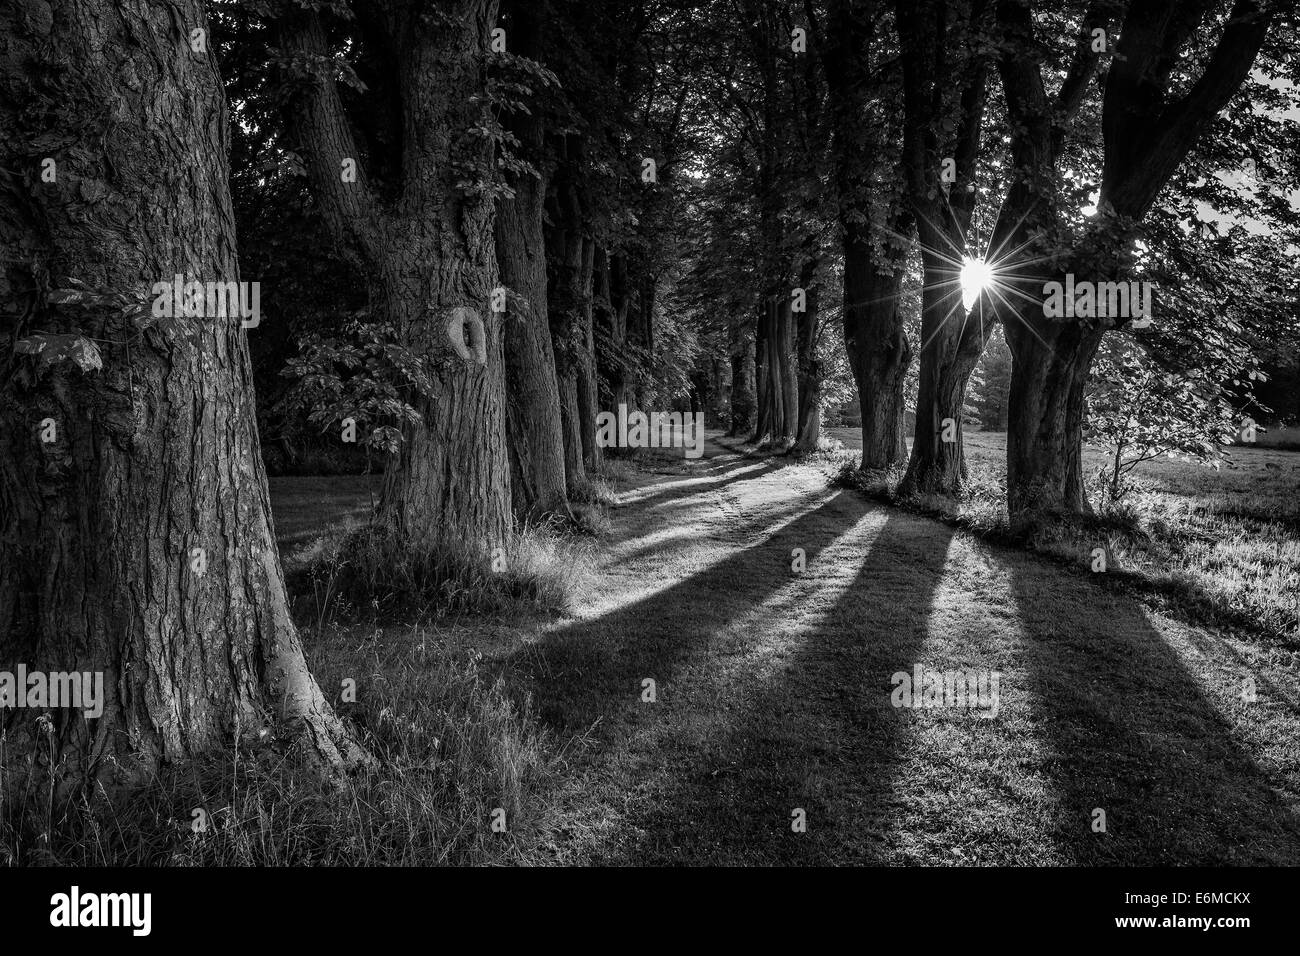 Sunrays among trees in a tree alley, Denmark - Stock Image